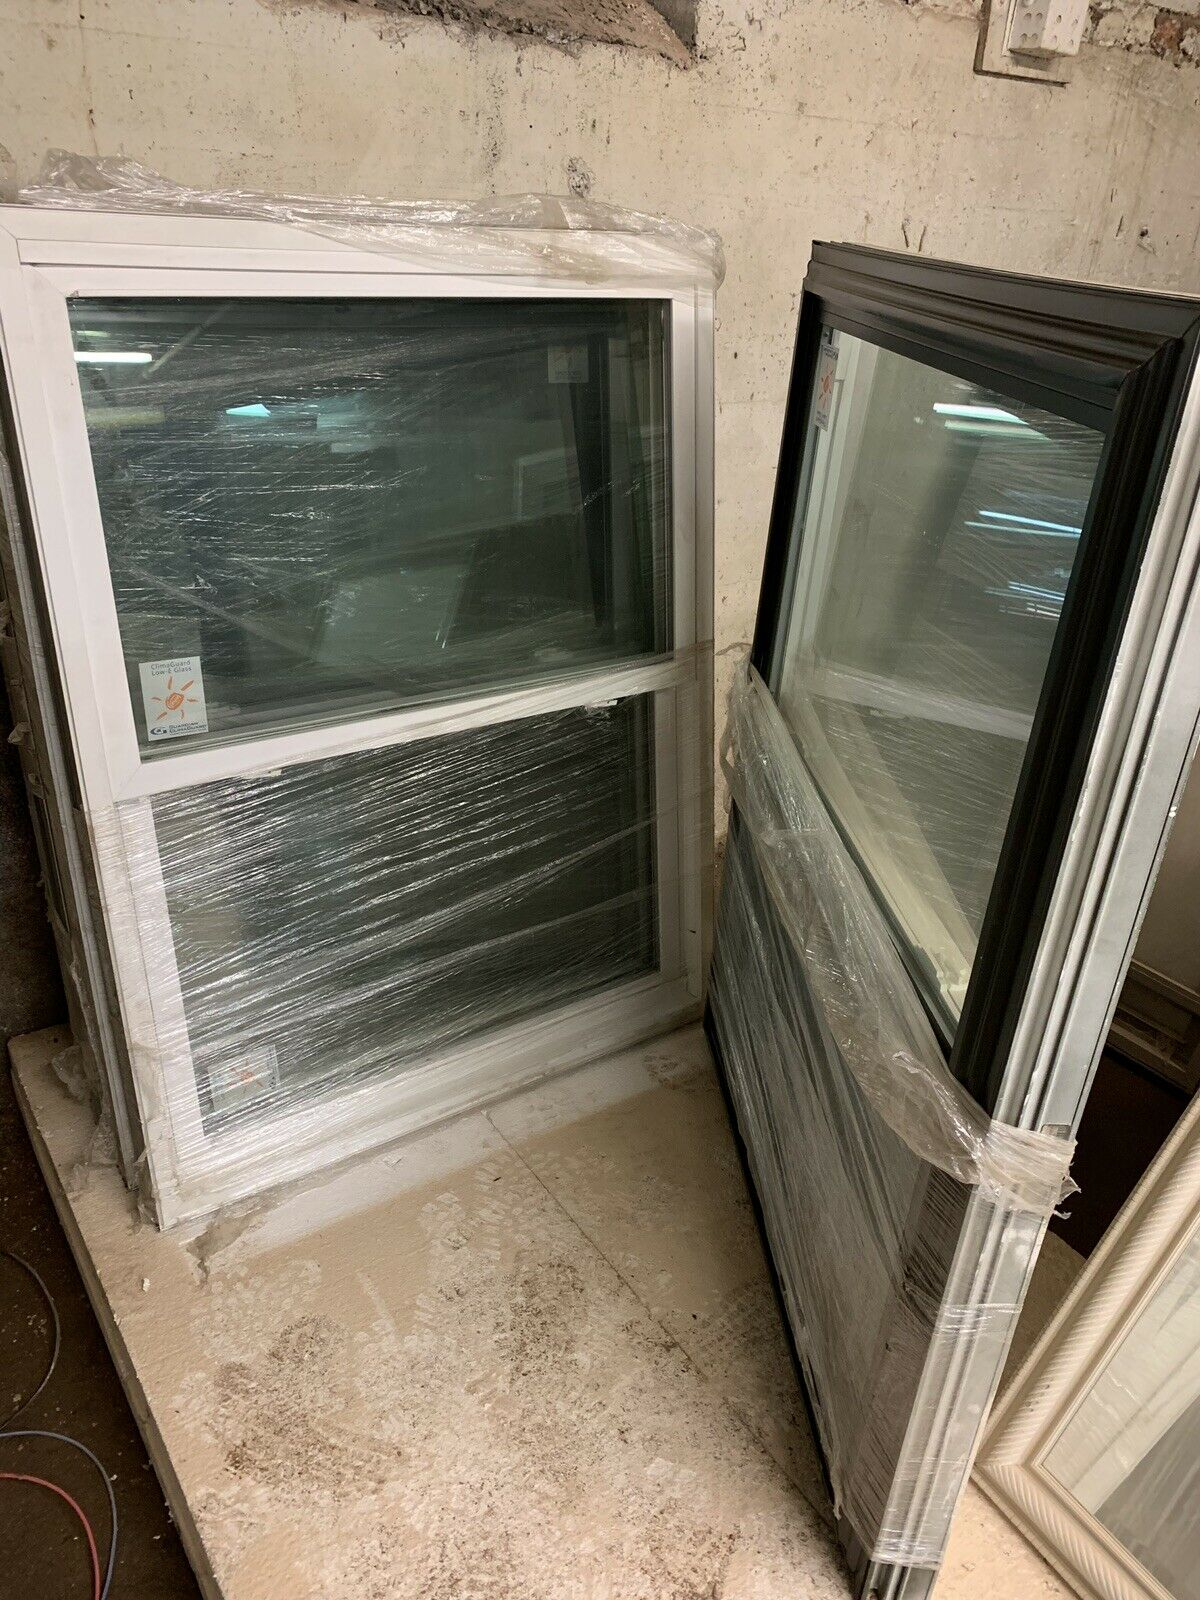 You can score  additional savings if you buy your window replacement at e-bay or thrift stores